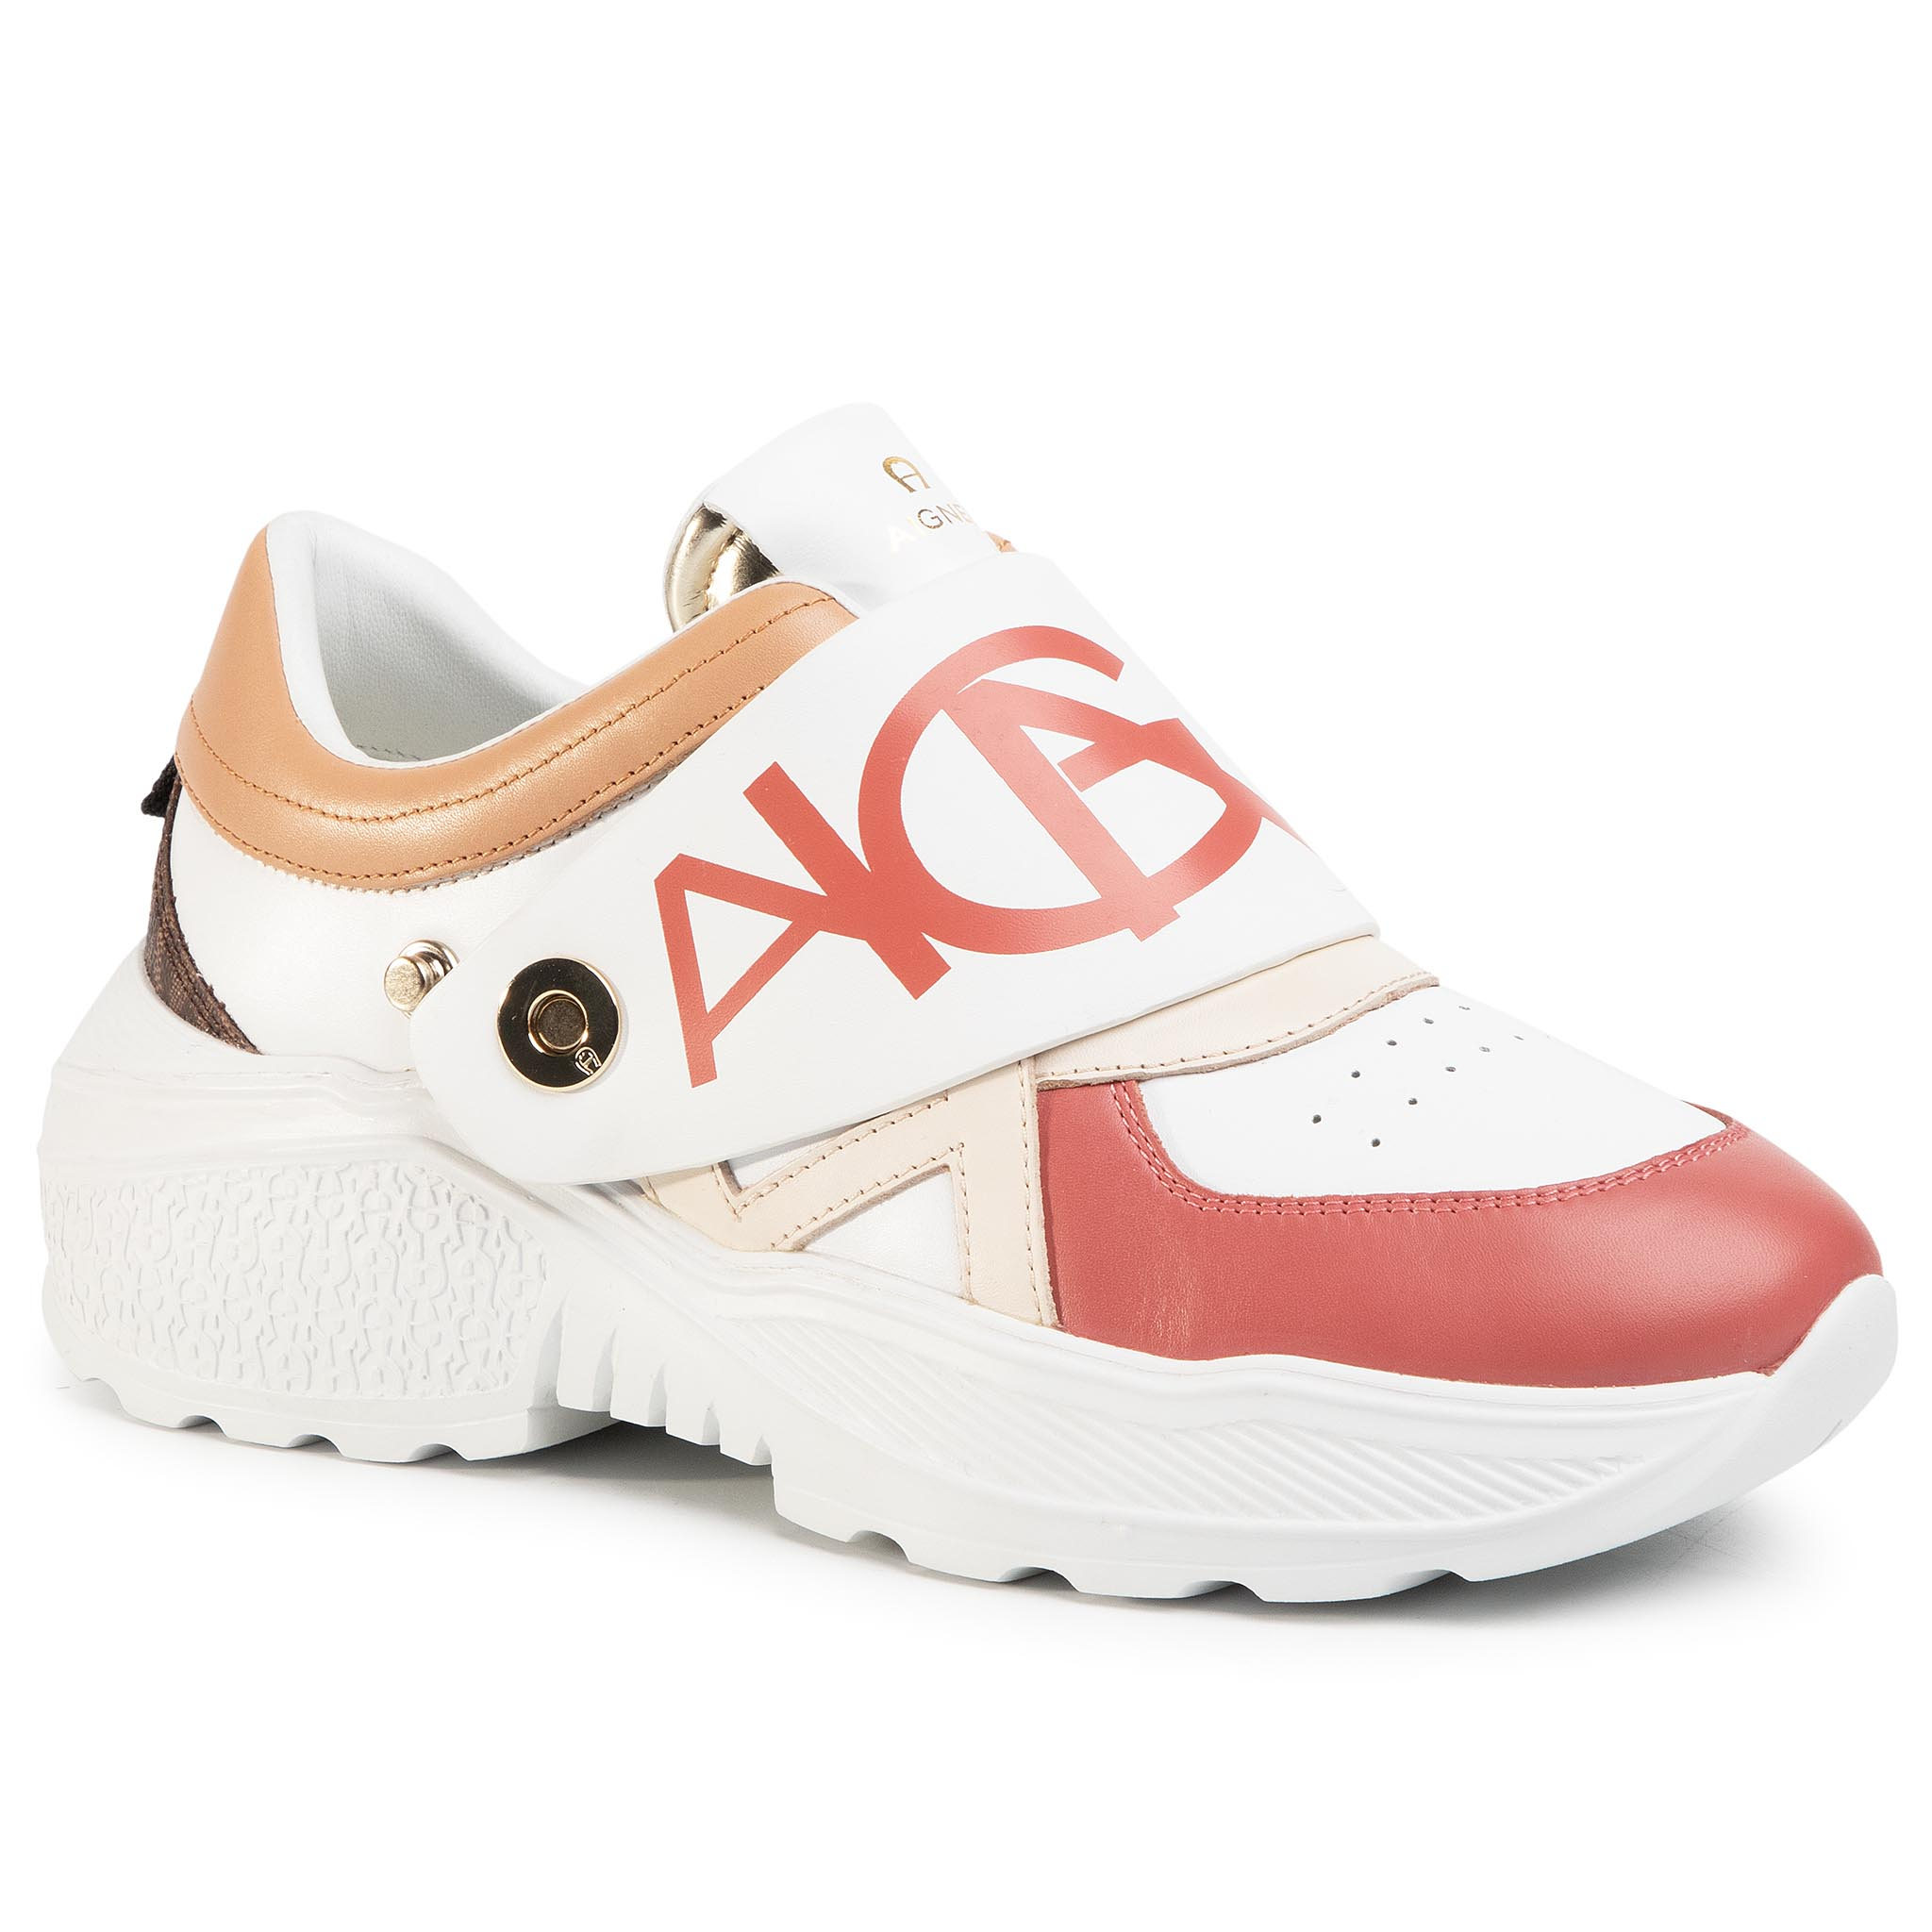 Sneakers AIGNER - Jenny 1 1201070 White/Rose 129